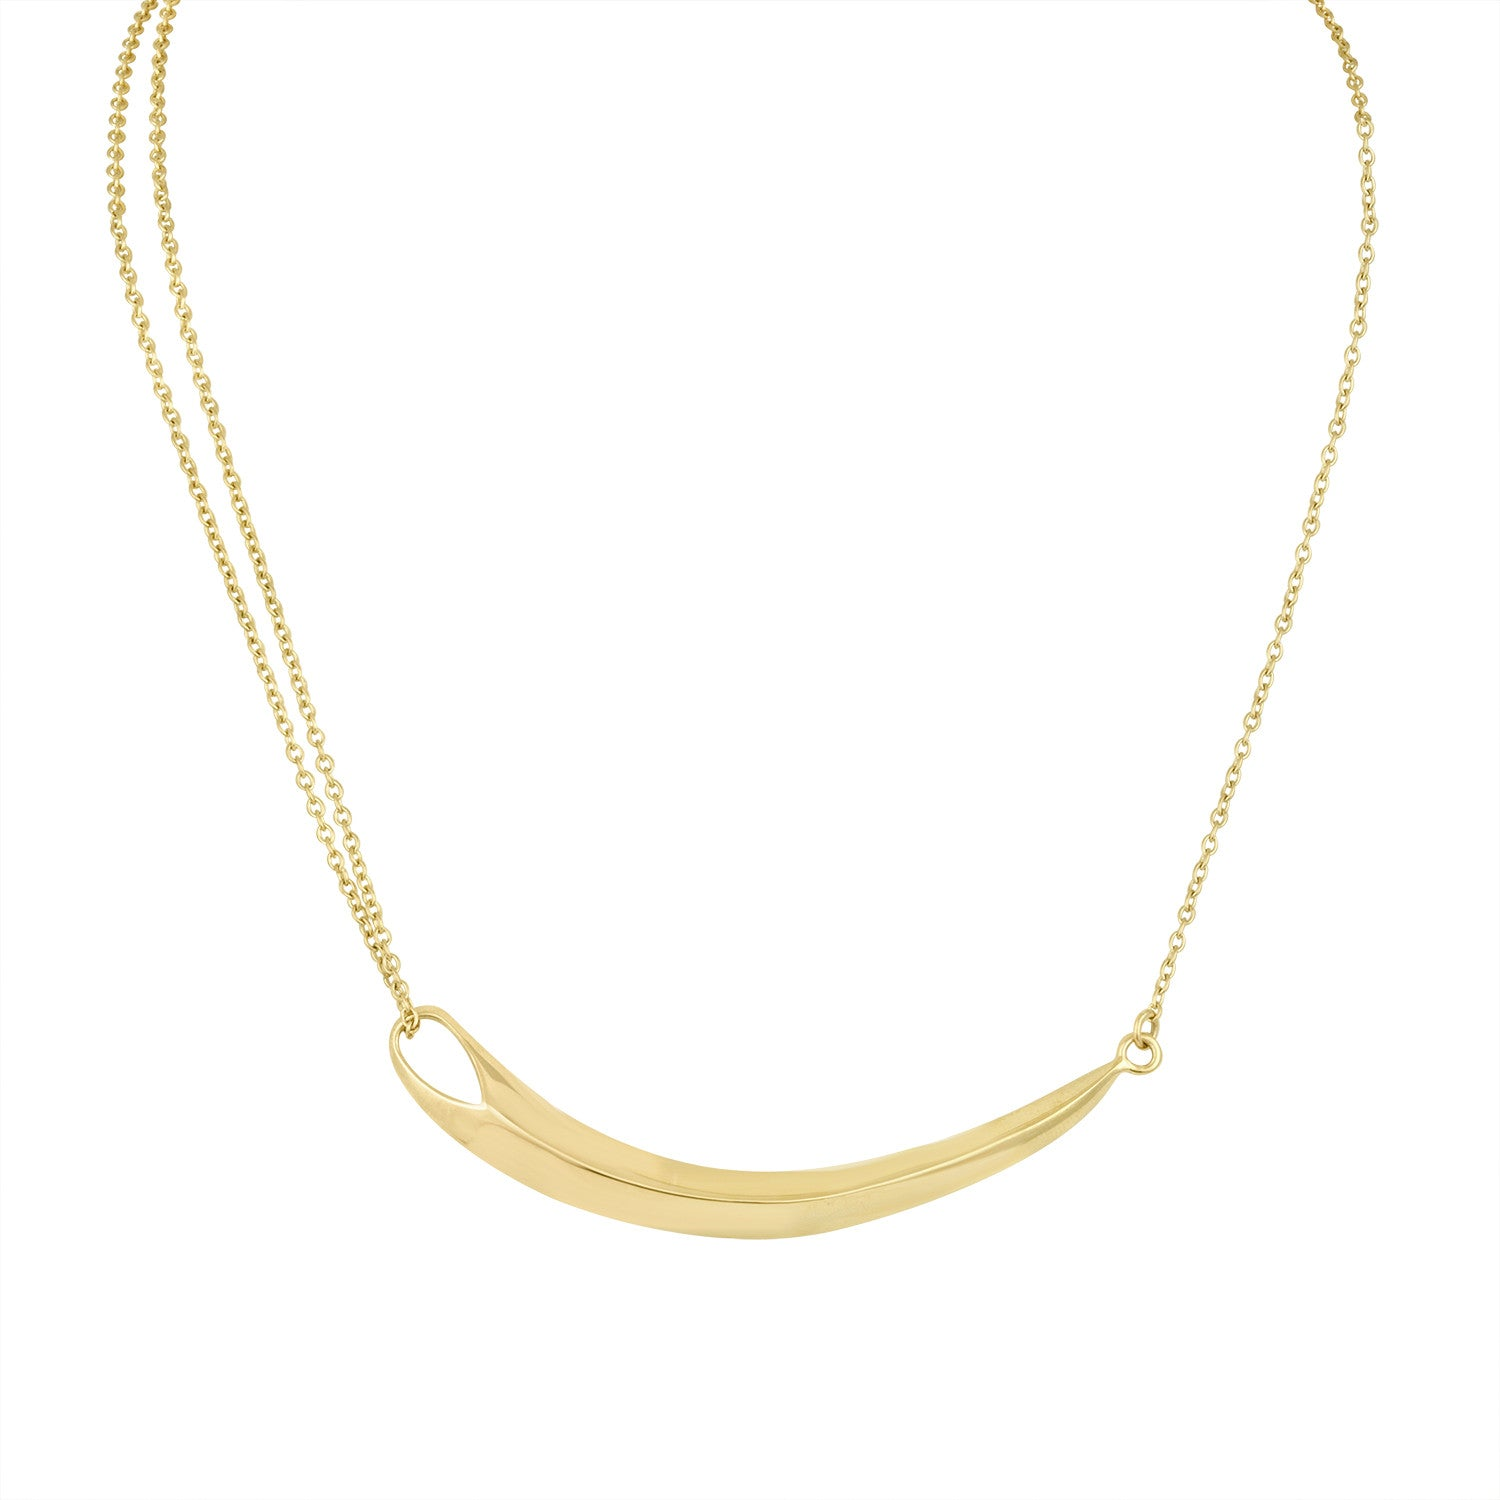 Gold Curved Beam and Double Chain Necklace